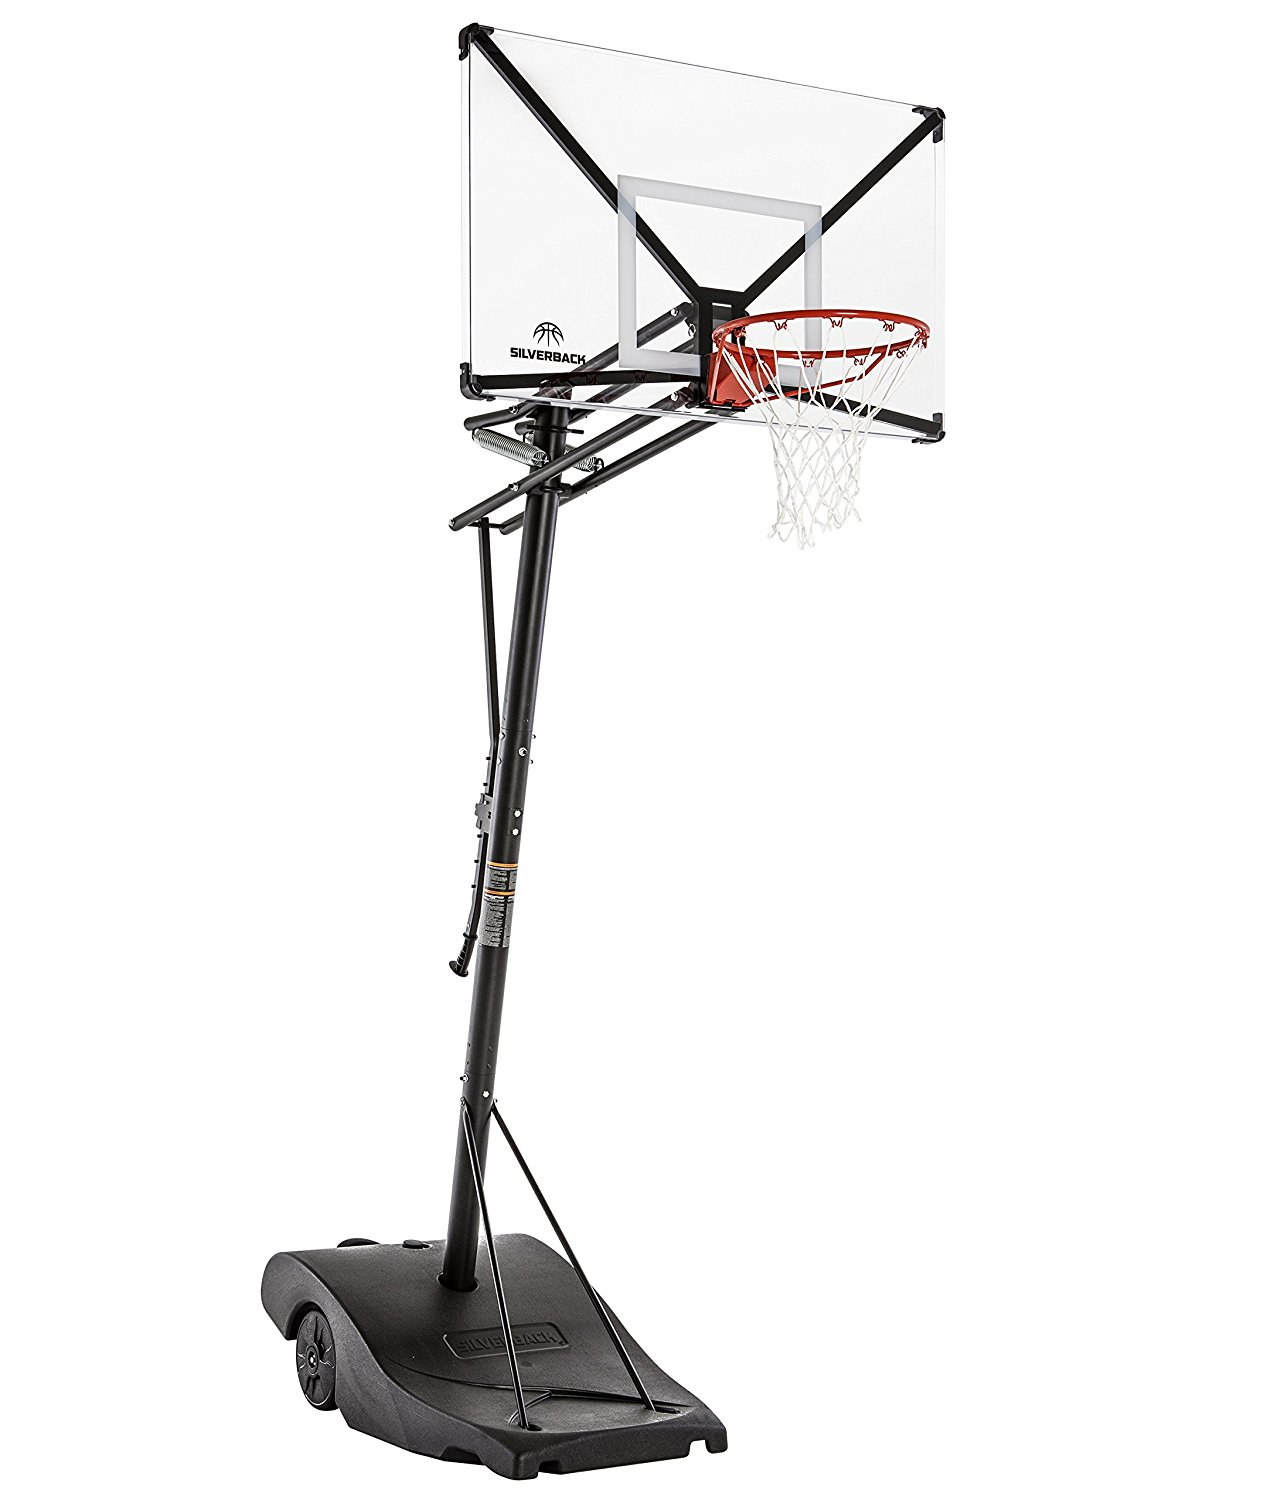 Silverback NXT Portable Basketball Hoop System – Available in 2 Sizes